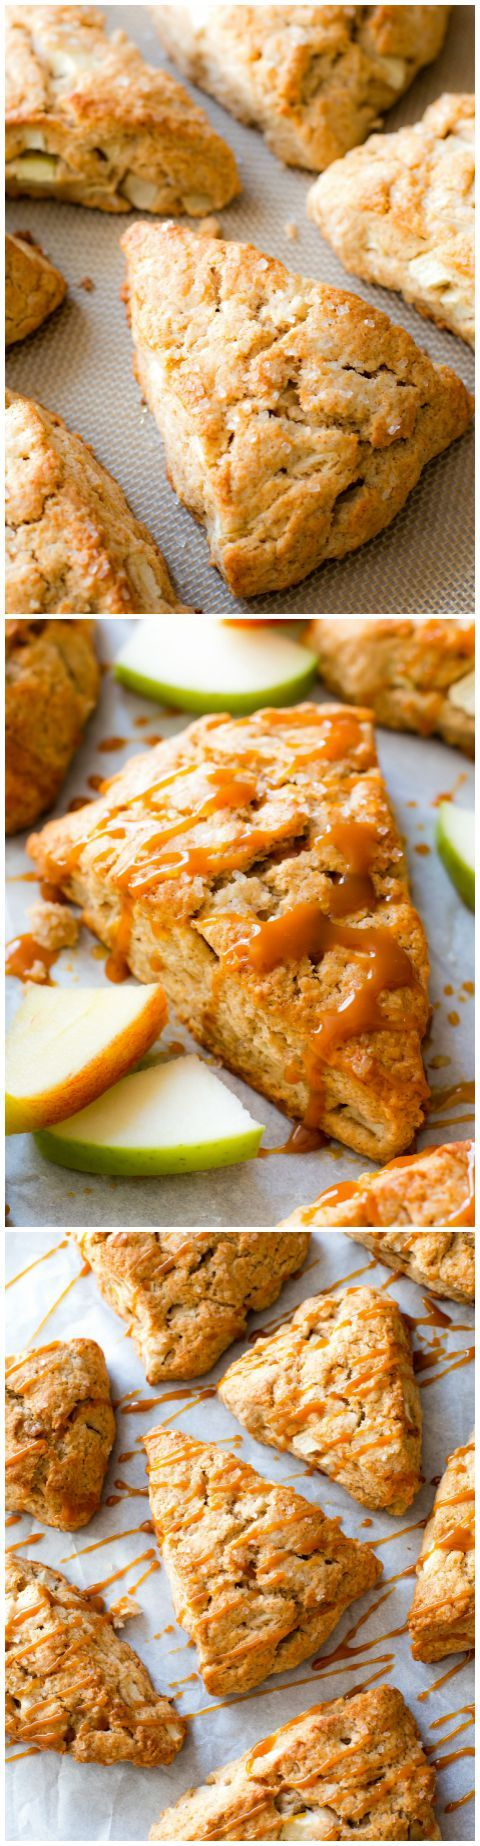 Homemade apple scones with tender centers, crumbly edges, cinnamon, tons of warm apples, and caramel on top! AND they're really simple.